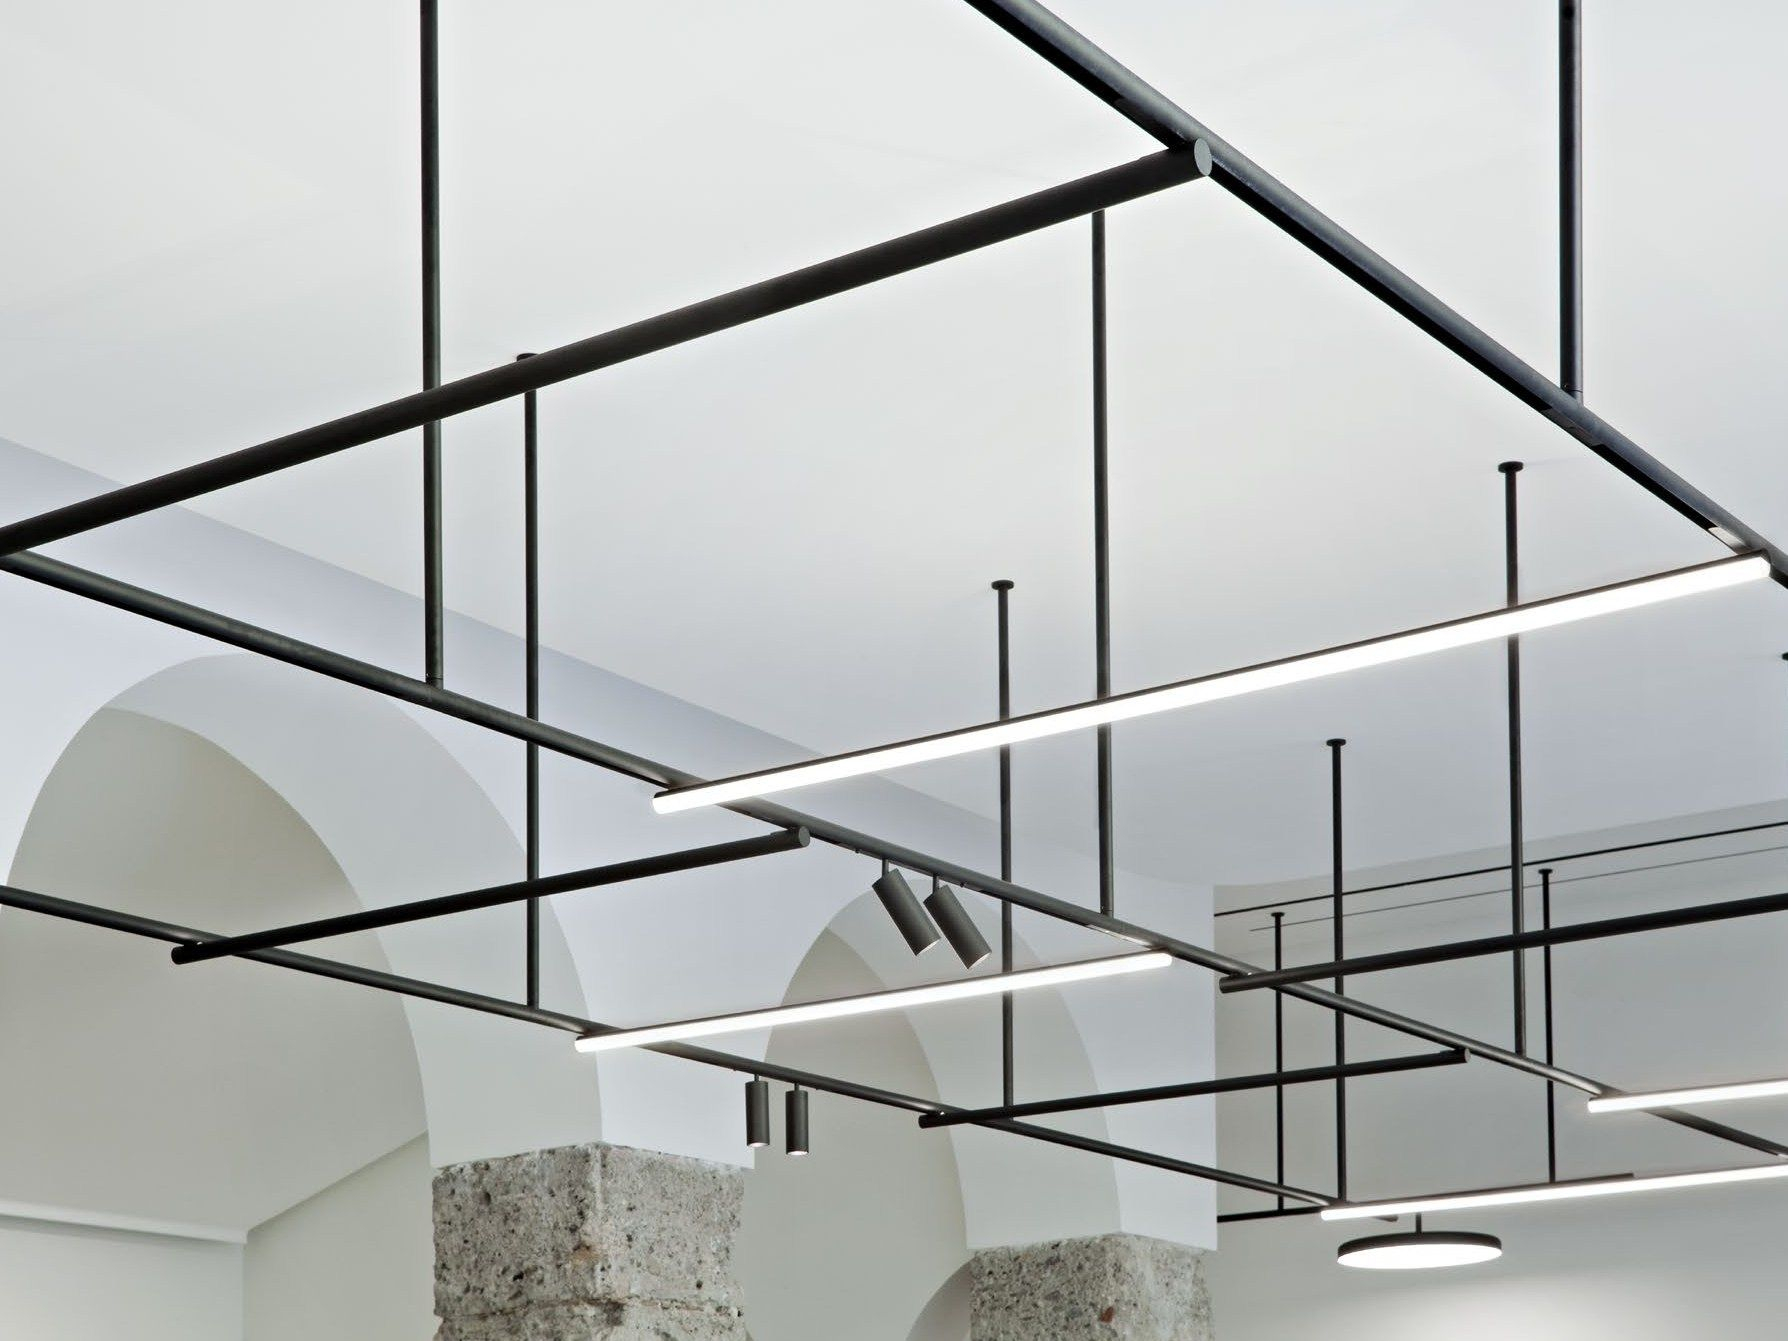 Illuminazione a binario in alluminio estruso infra structure by flos